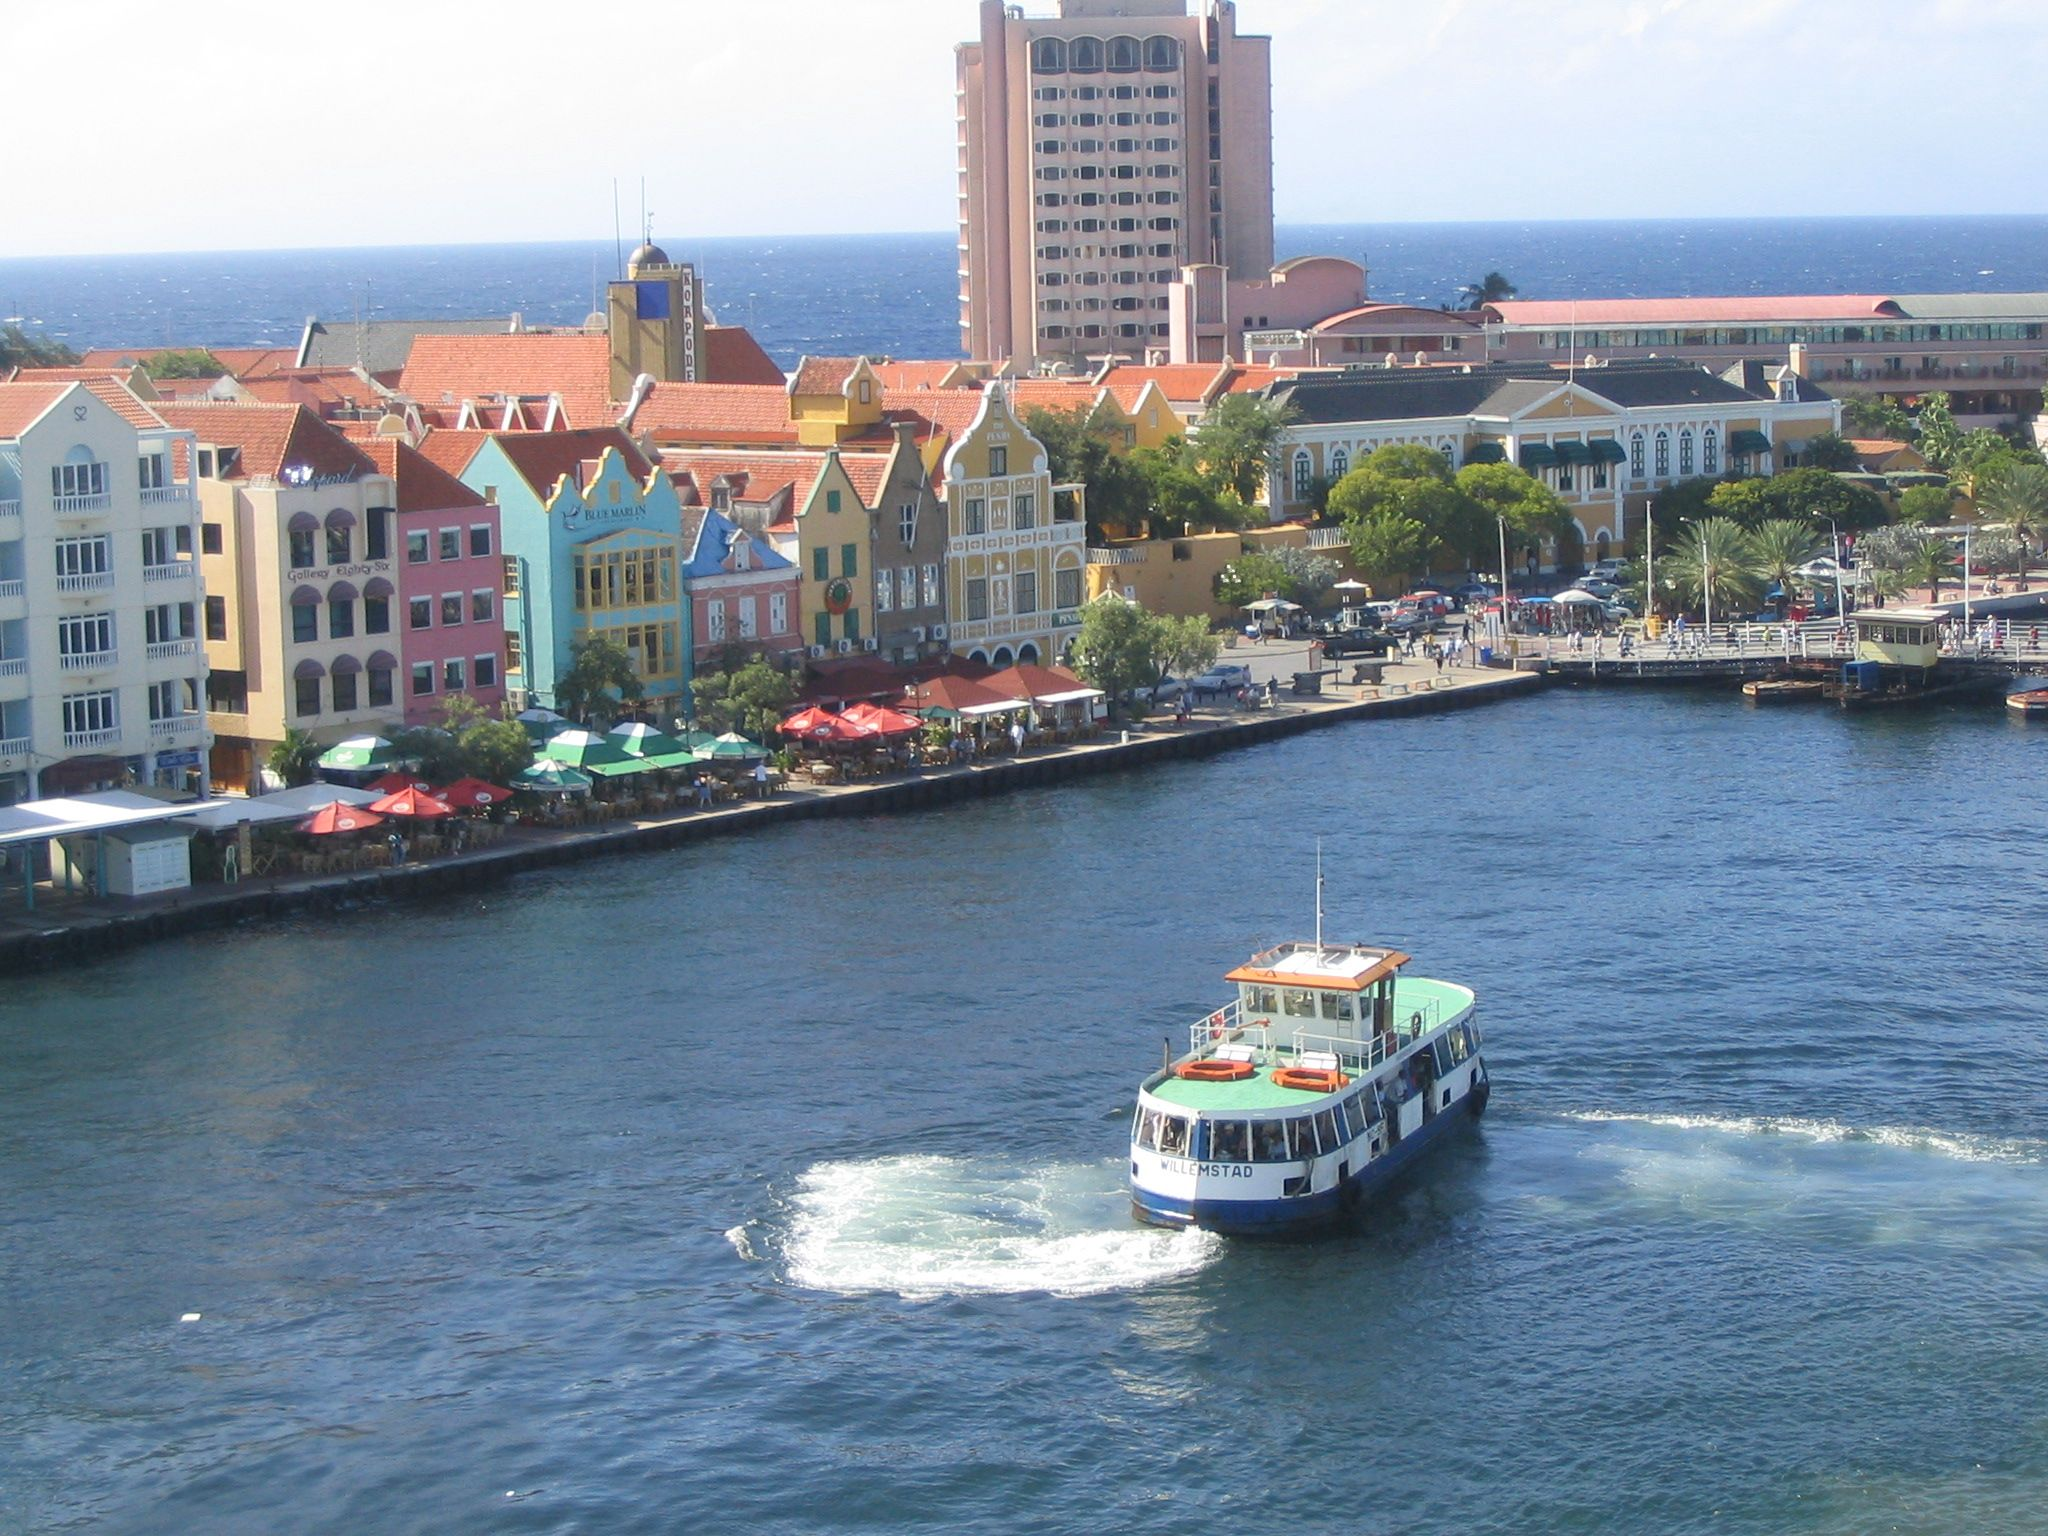 Curacao - Photo by Laurel Mayne